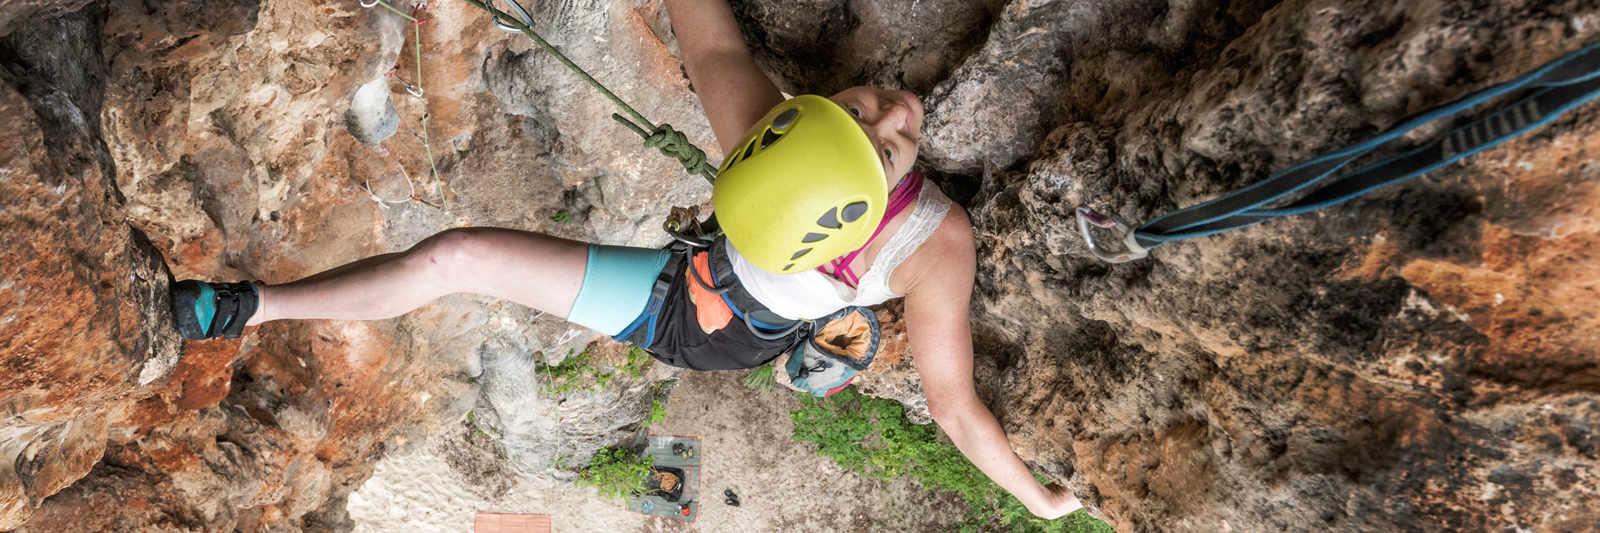 Thailand-Sport-Climbing-Holiday_7619